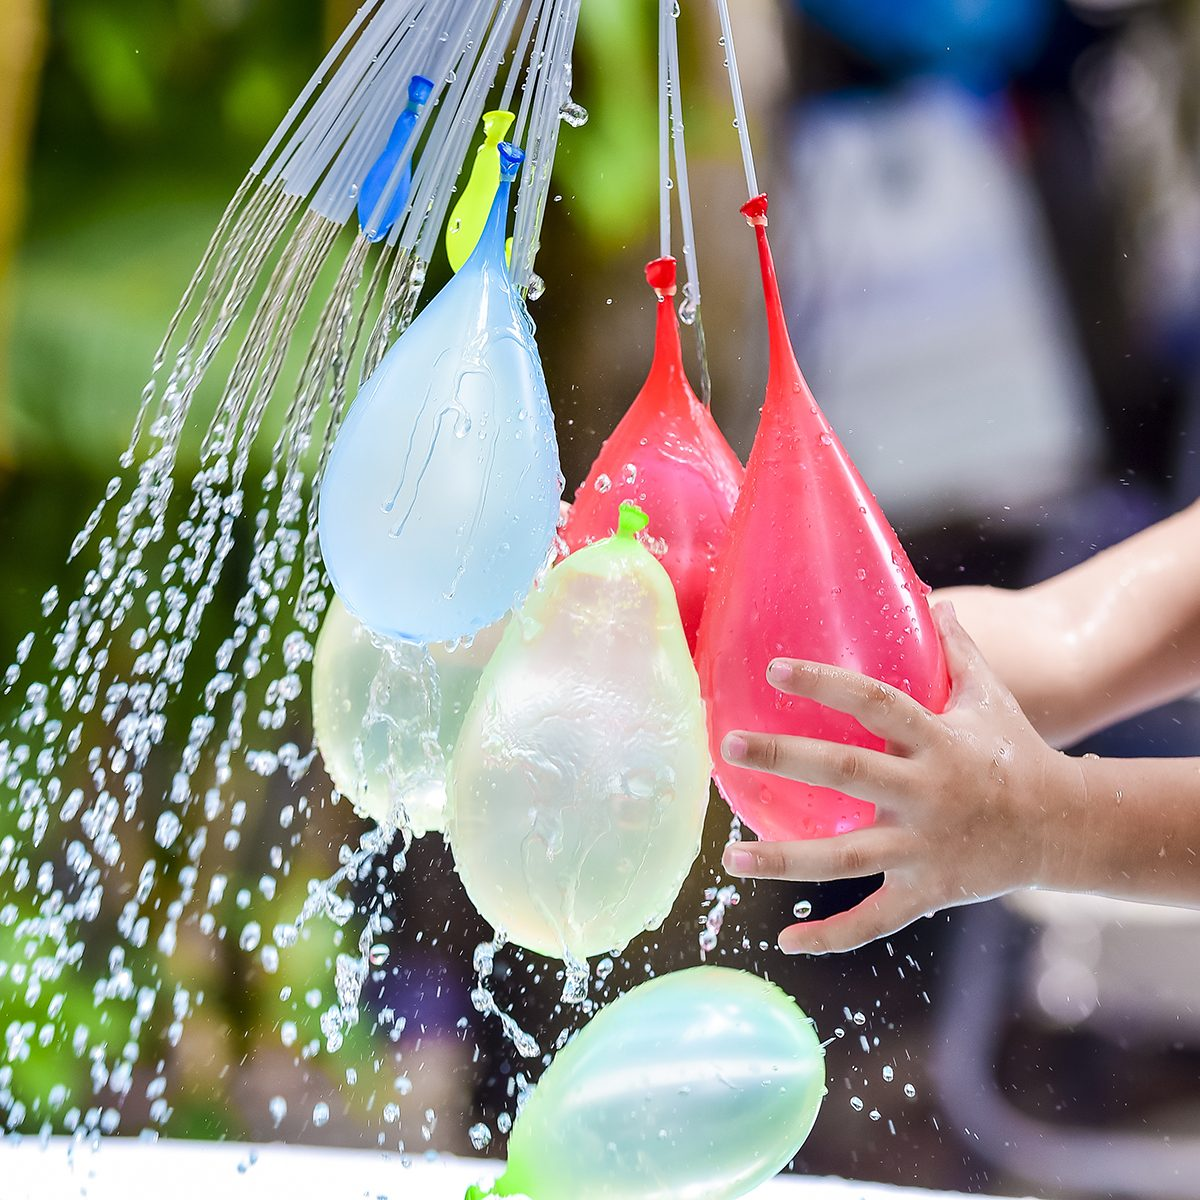 children holding colorful water balloons on his hand.